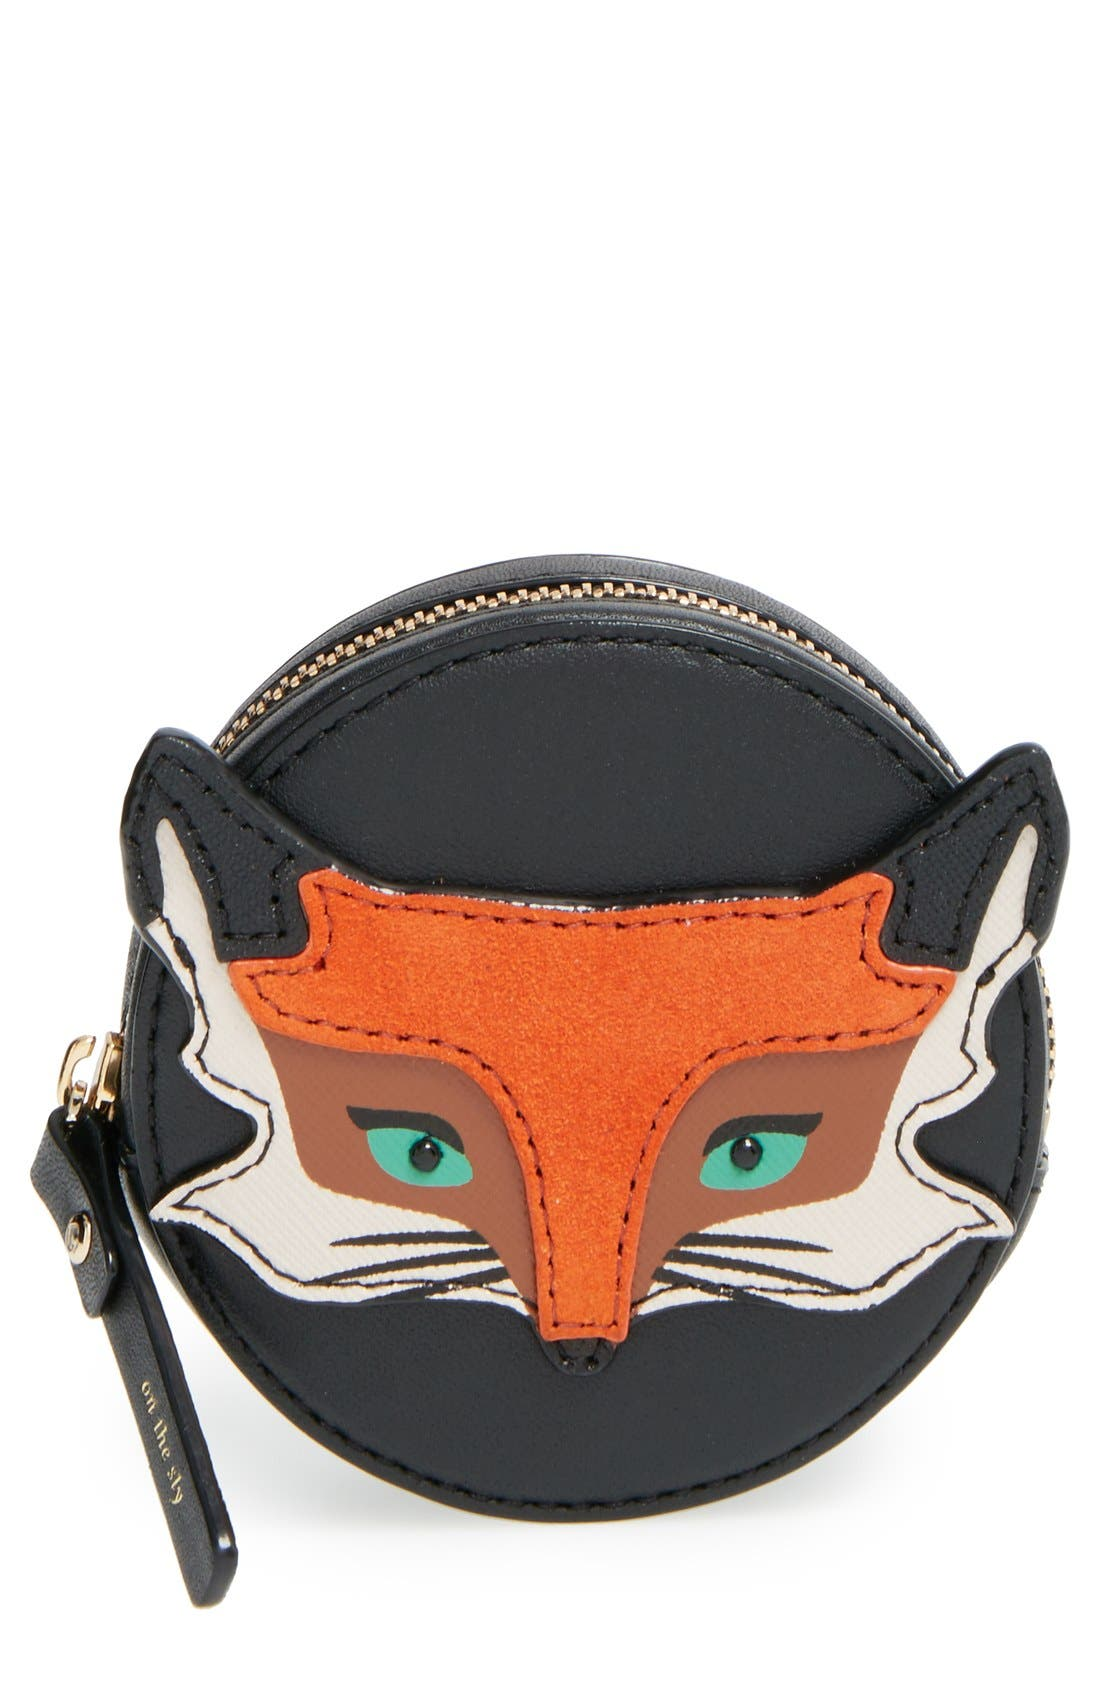 KATE SPADE NEW YORK kate spade new york 'blaze a trail - fox' leather coin purse, Main, color, 001